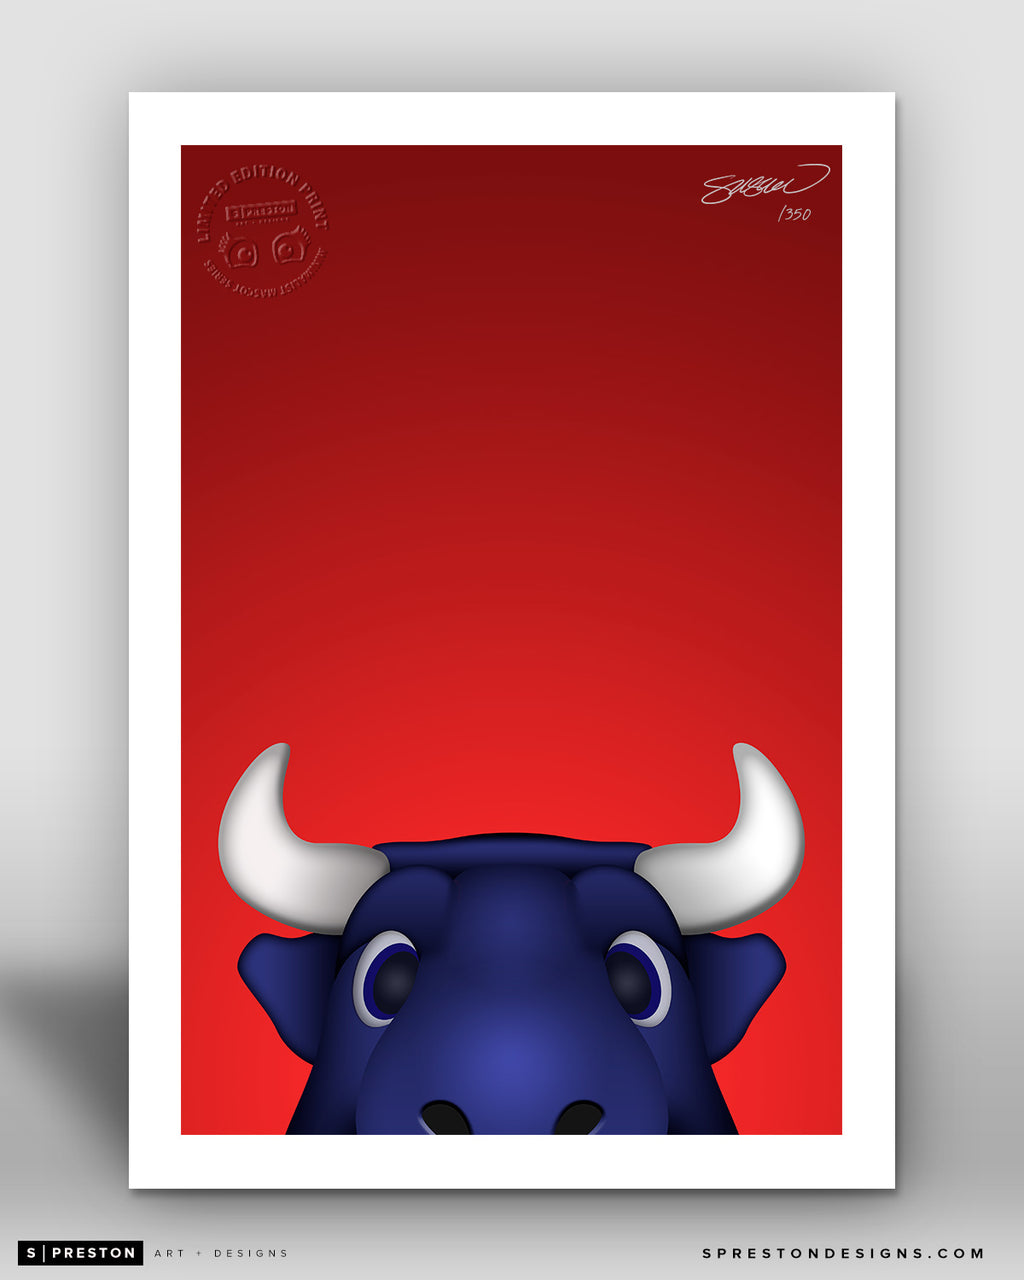 Minimalist Toro Houston Texans Mascot - S. Preston